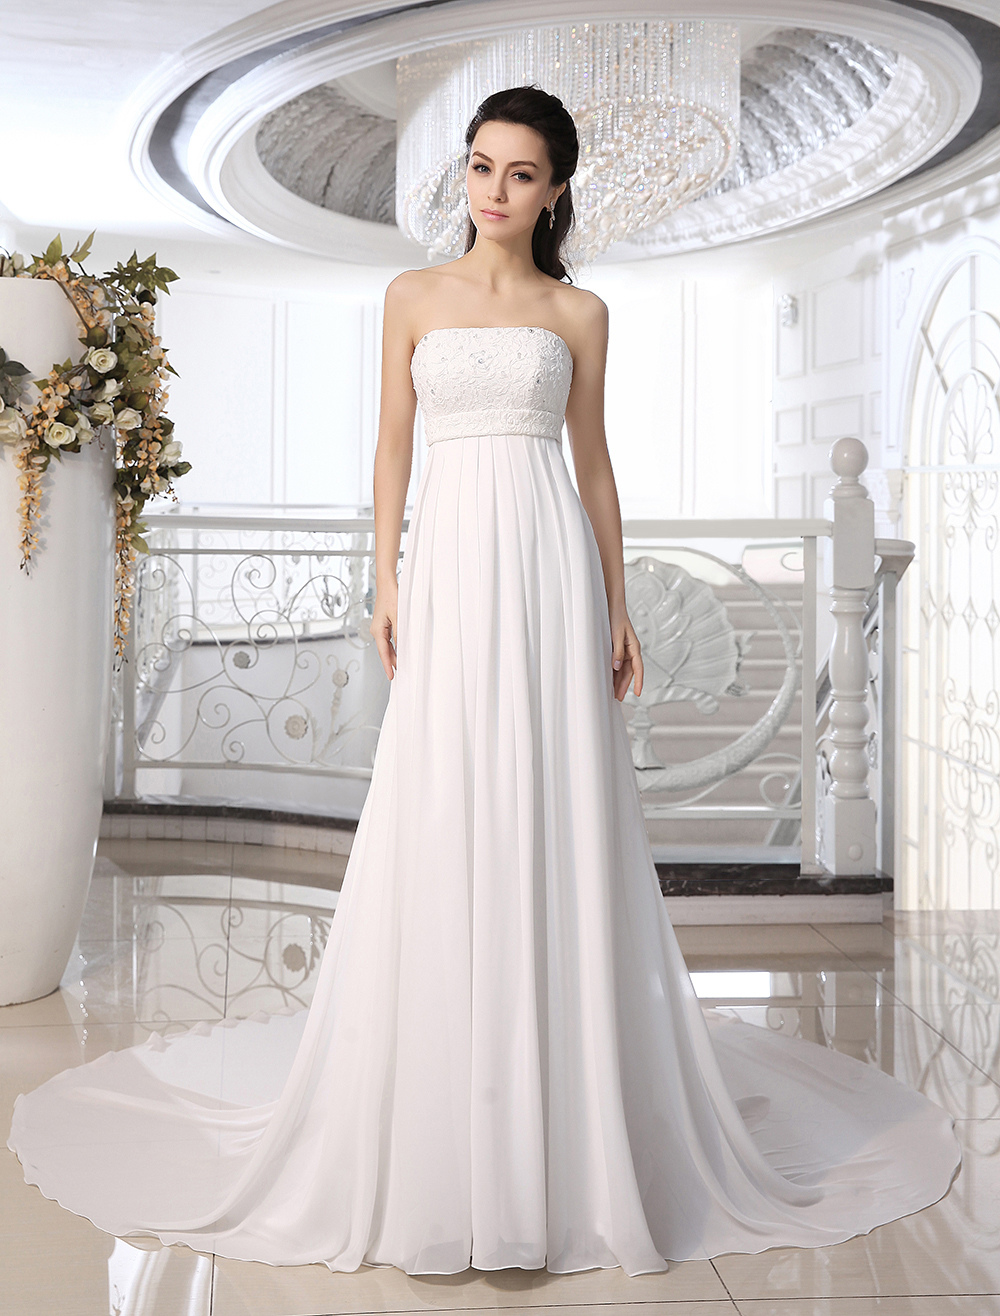 Ivory Strapless Wedding Dress With Beaded Applique